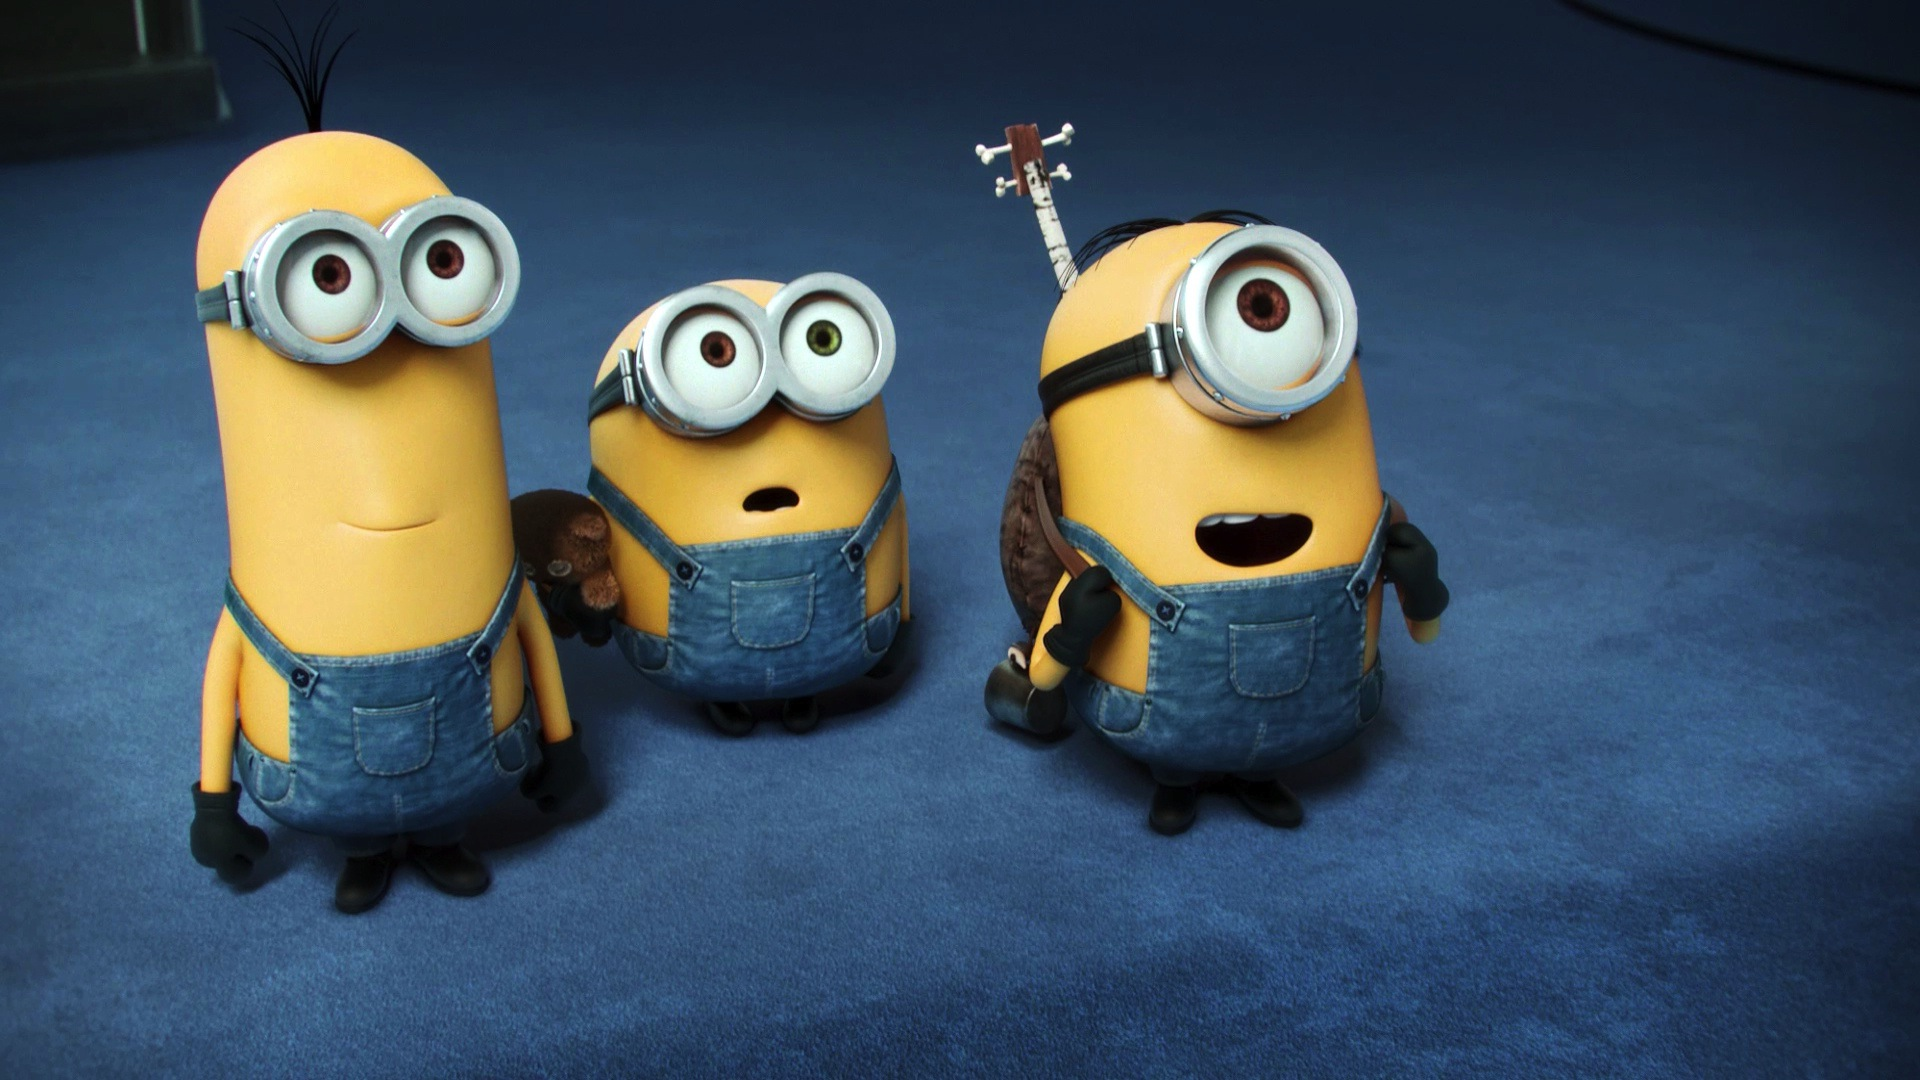 Kevin Bob Minions Hd Cartoons 4k Wallpapers Images